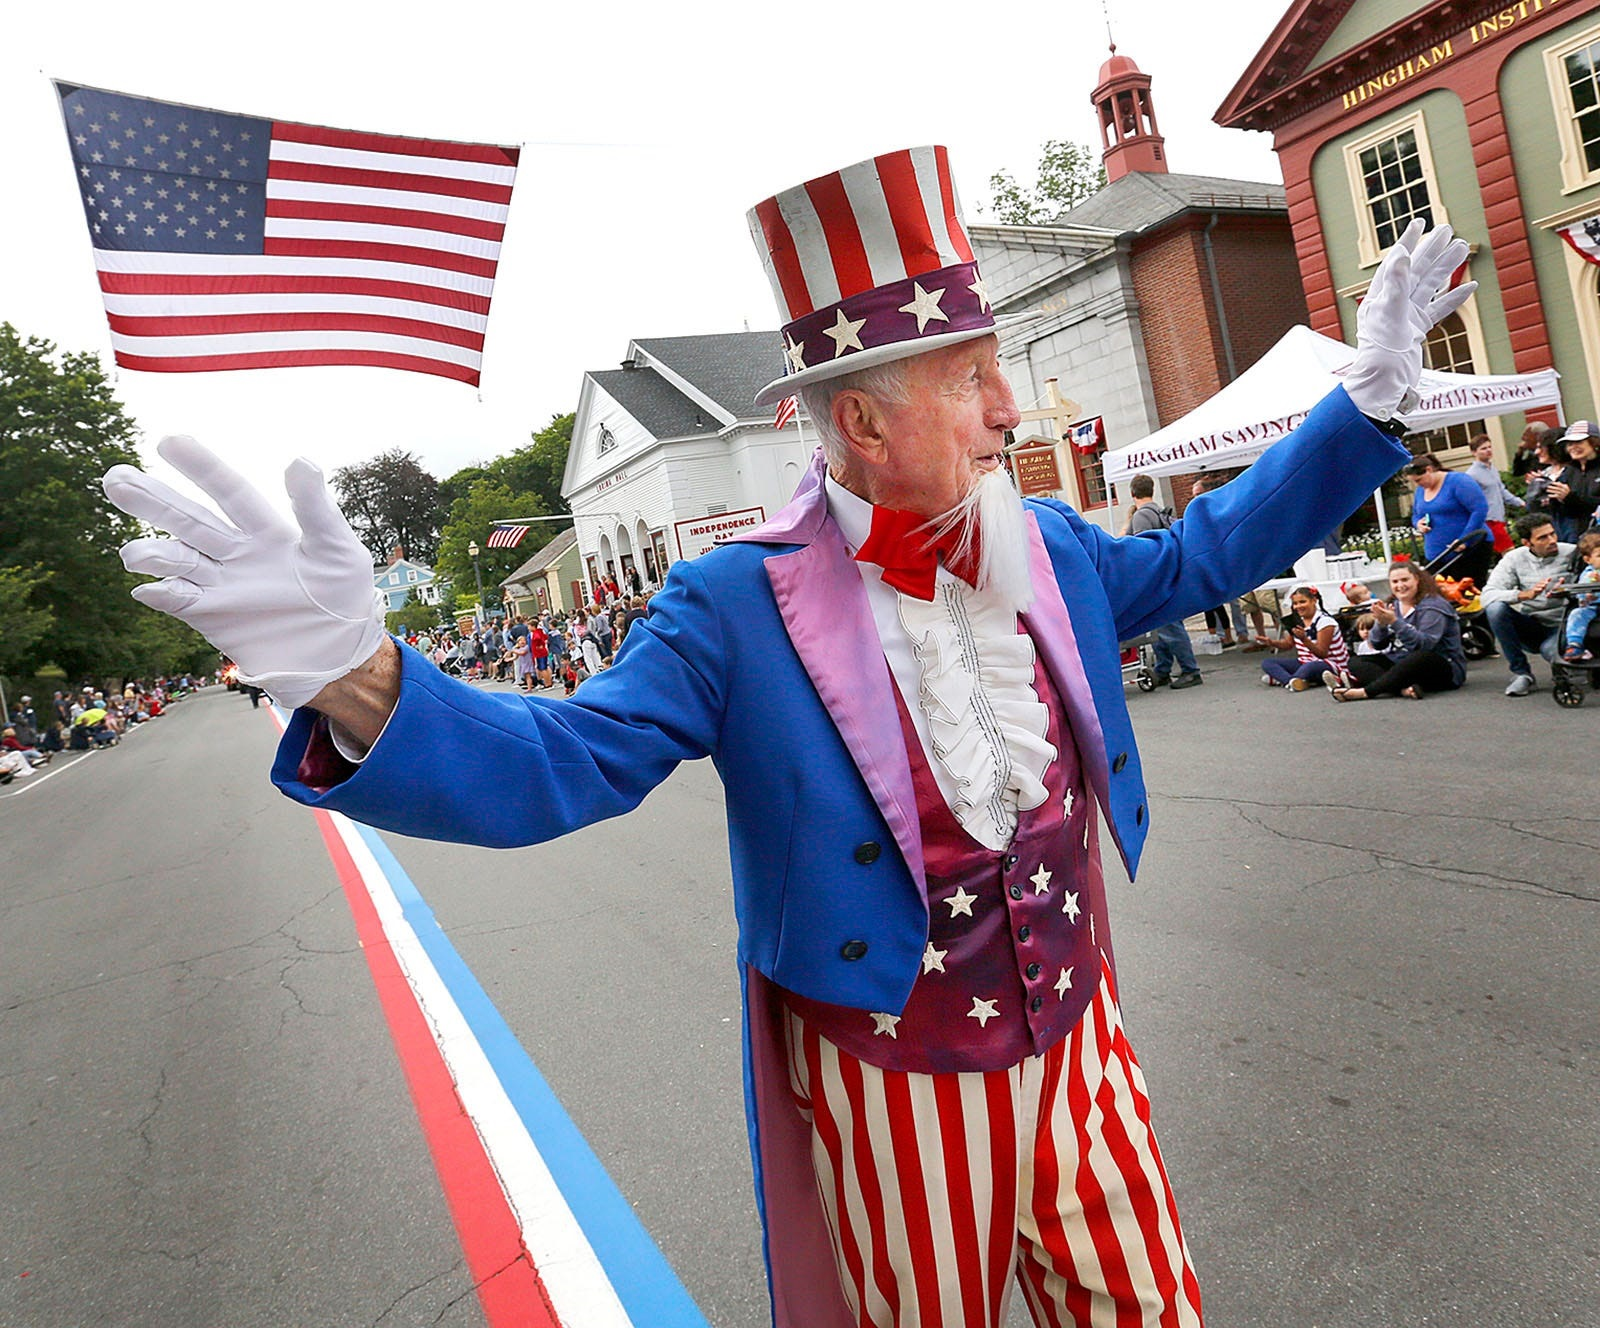 LEAD IMAGEUncle Sam- George Ford-82 leads the parade.The annual July 4th parade in Hingham Square on Sunday July 4, 2021 Greg Derr/The Patriot Ledger070421 Gd Hin Parade13 Jpg